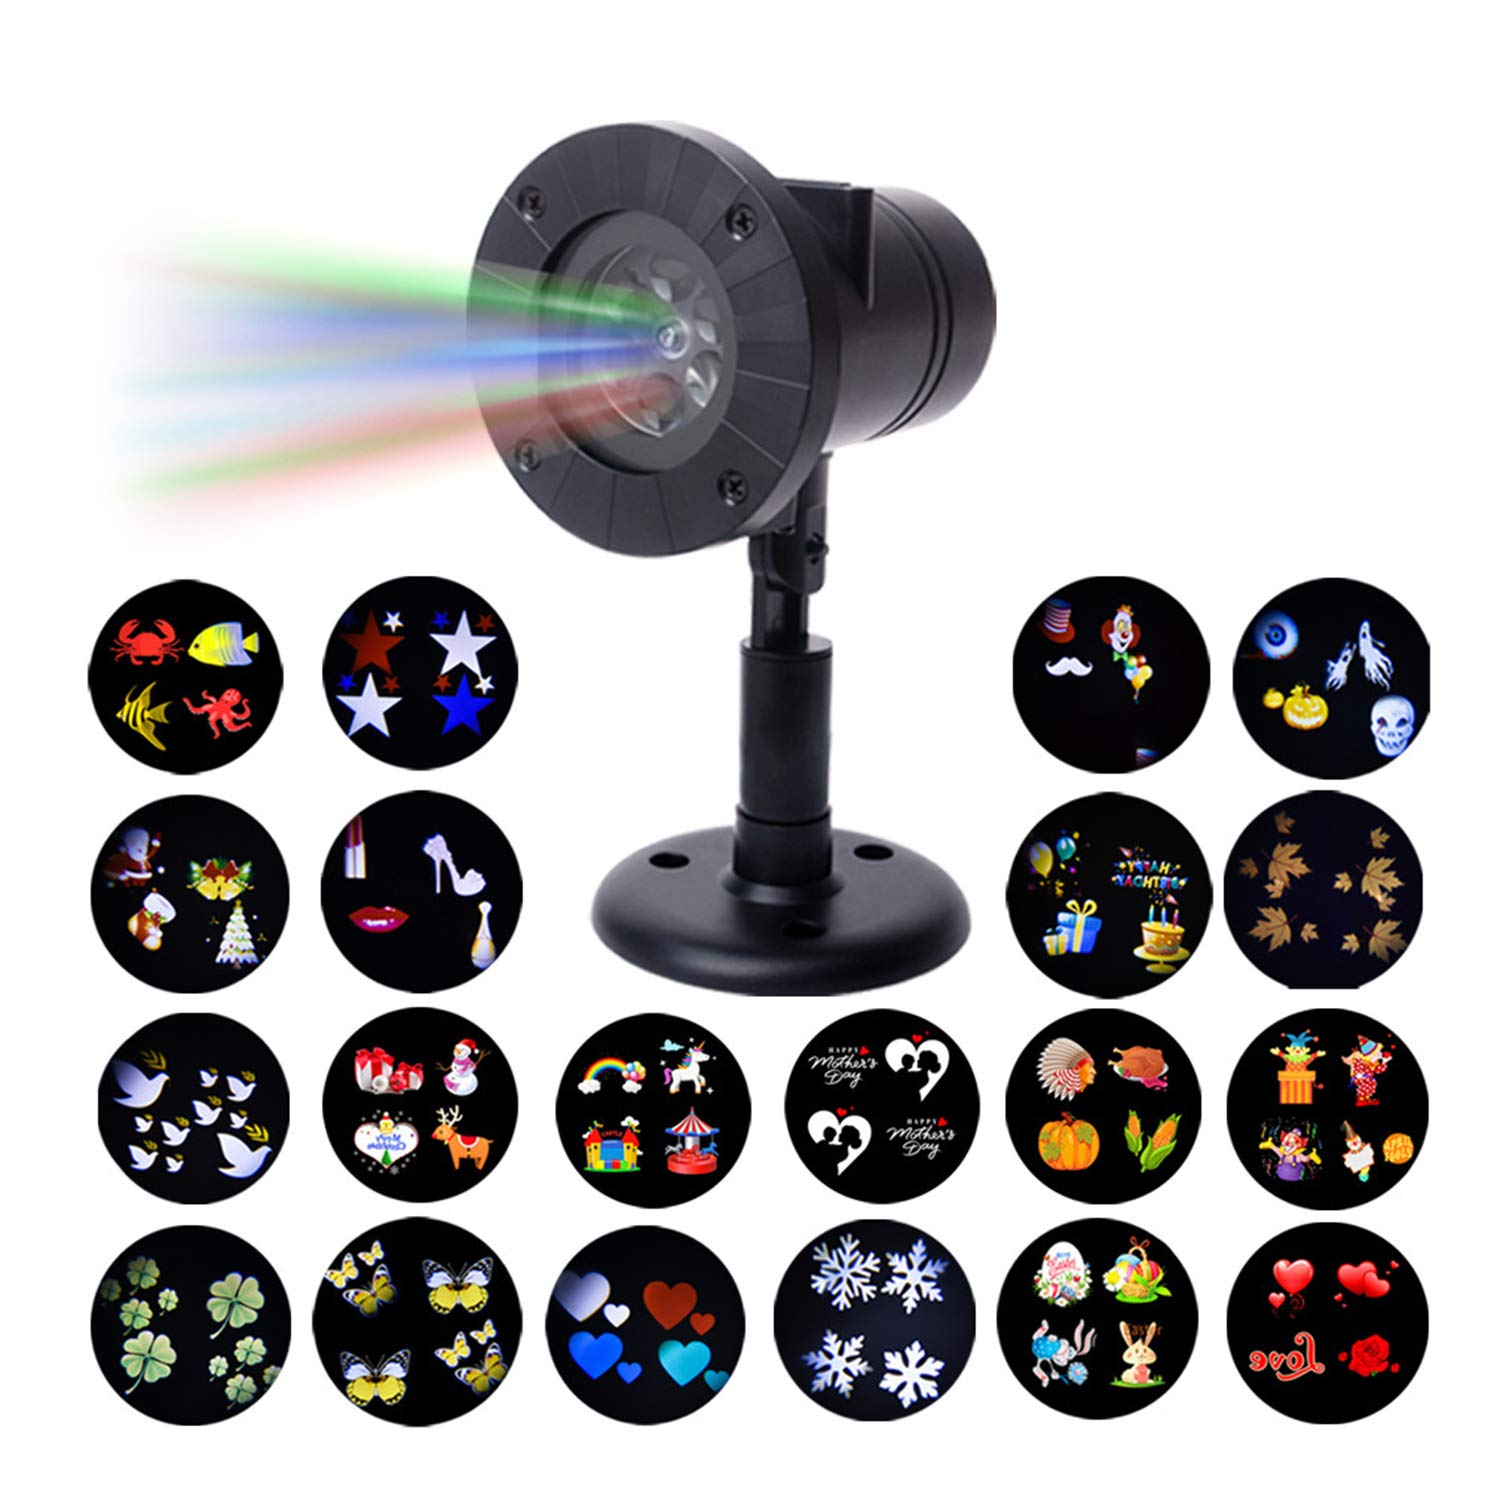 Outdoor Waterproof Projection Lamp, 12 Picture Card Remote Control Projection Snowflake Light, Film Lamp for Card Decoration Lamp